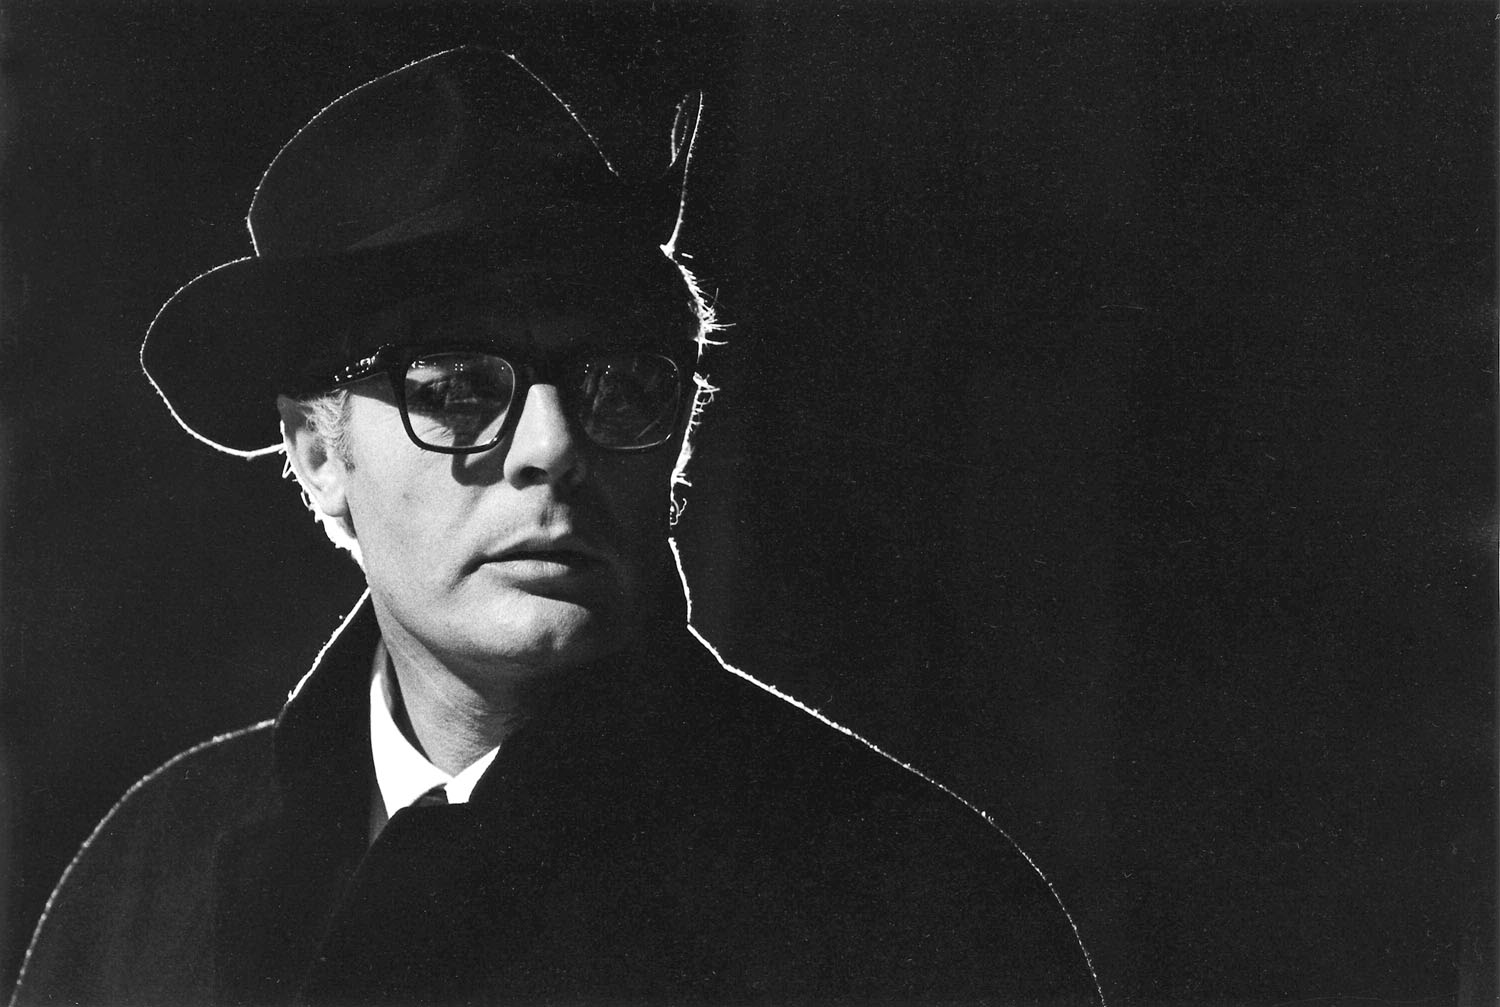 8 1 2 federico fellini October 31, 1993, rome, italy filmography bibliography articles in senses web resources federico fellini's cinema (1) federico fellini, a canonical name of personal expression and artistic fantasy in the cinema 8 1/2 review by derek malcolm.